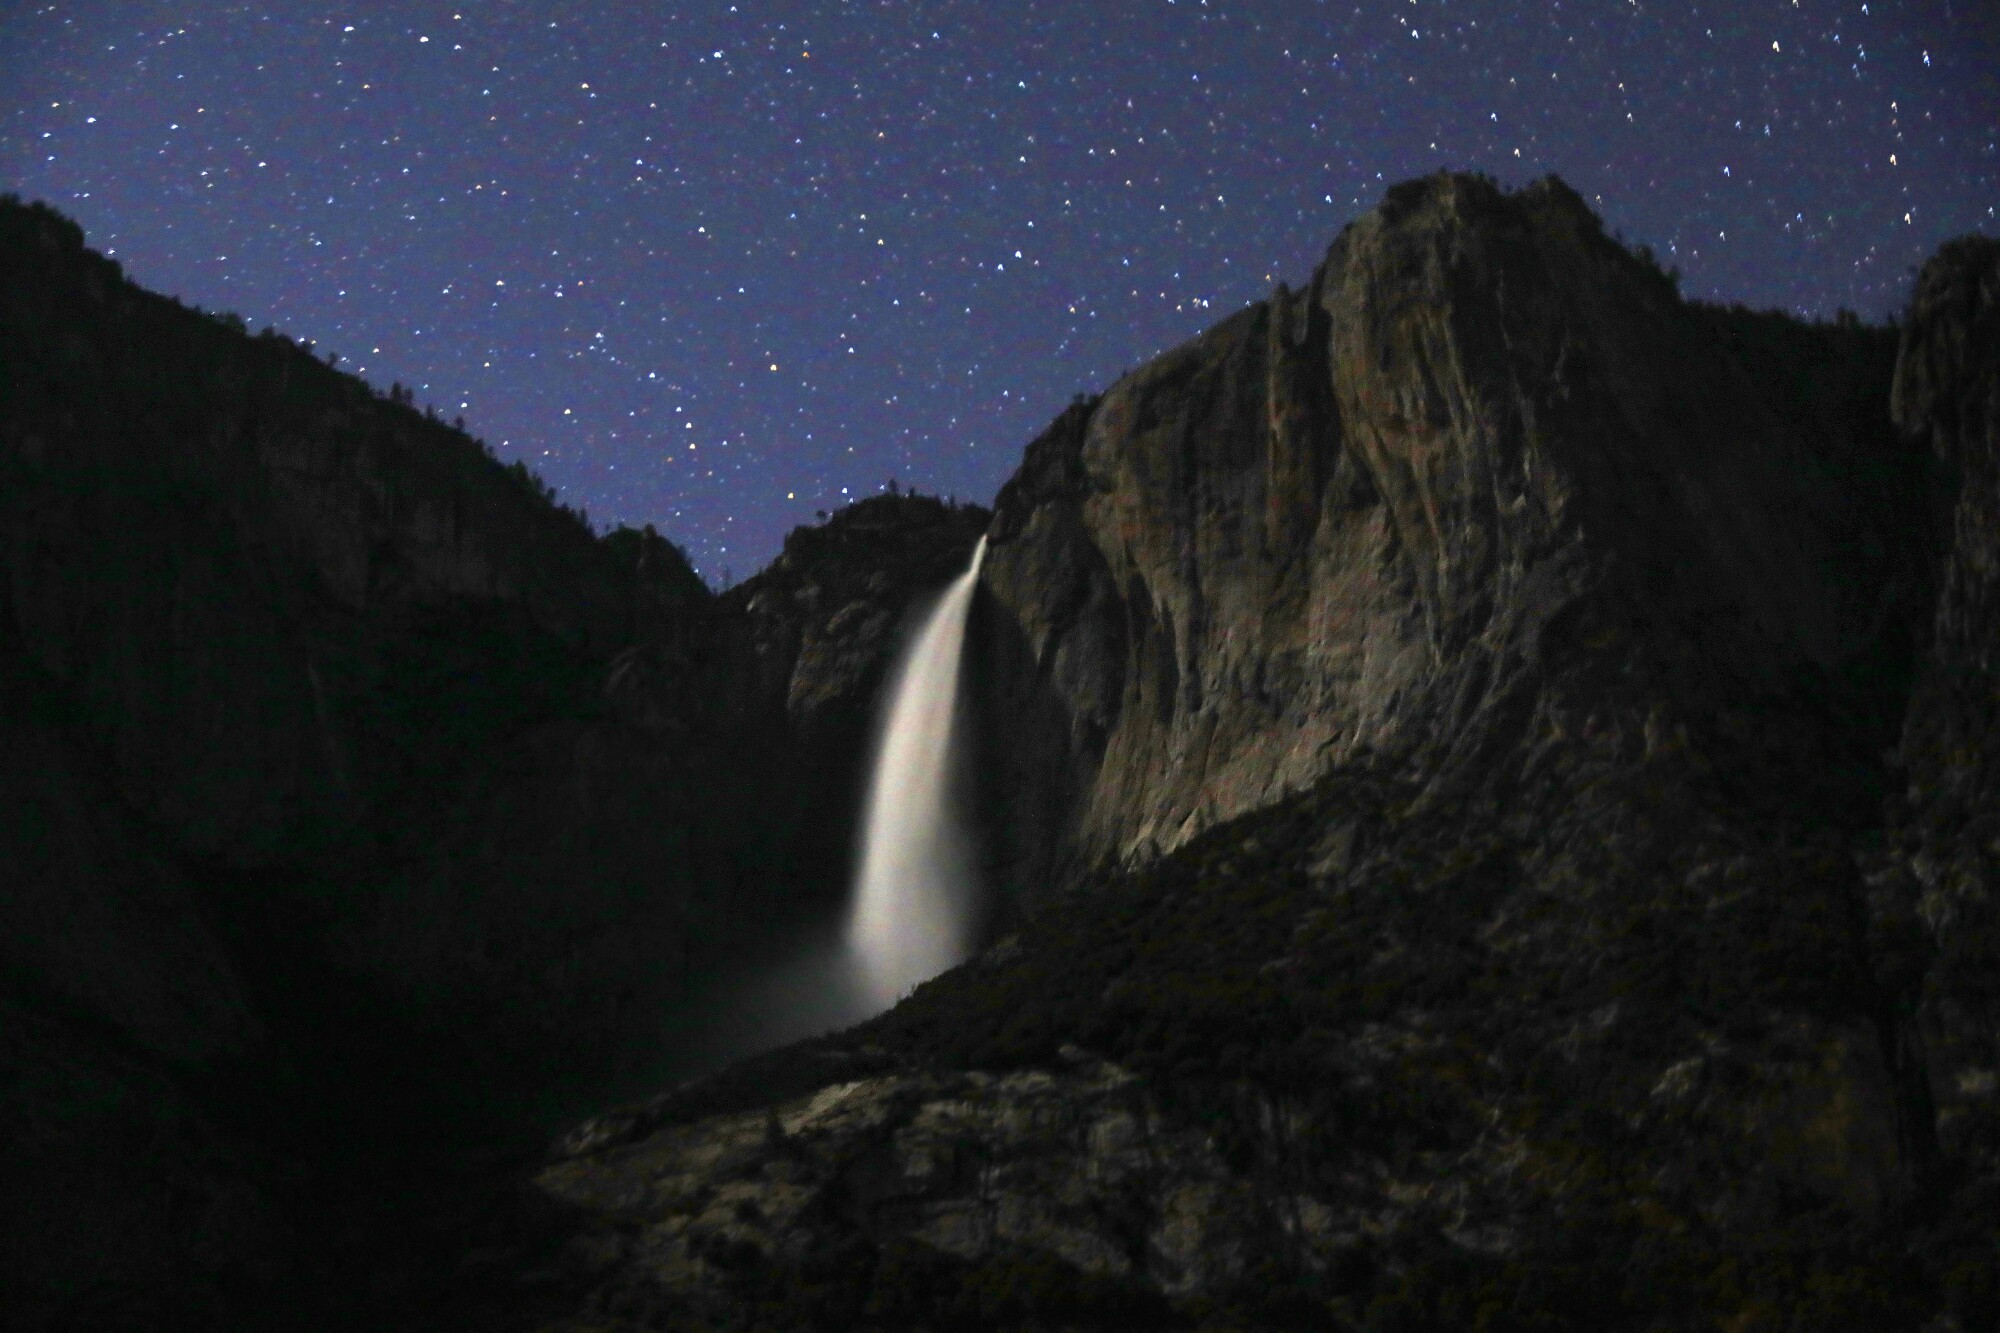 A large waterfall under a starry nighttime sky